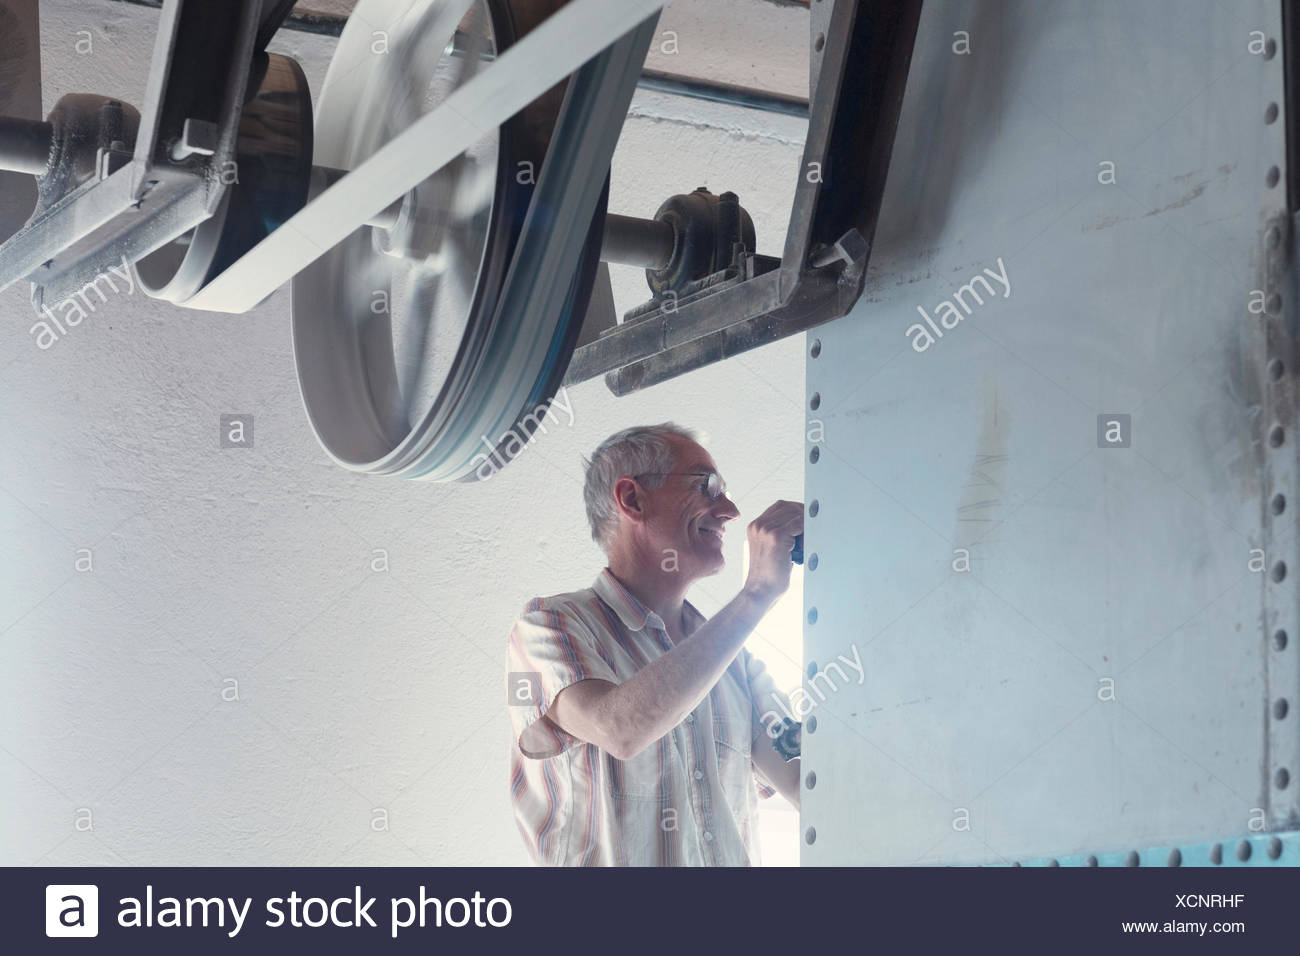 Male miller operating machine in wheat mill - Stock Image